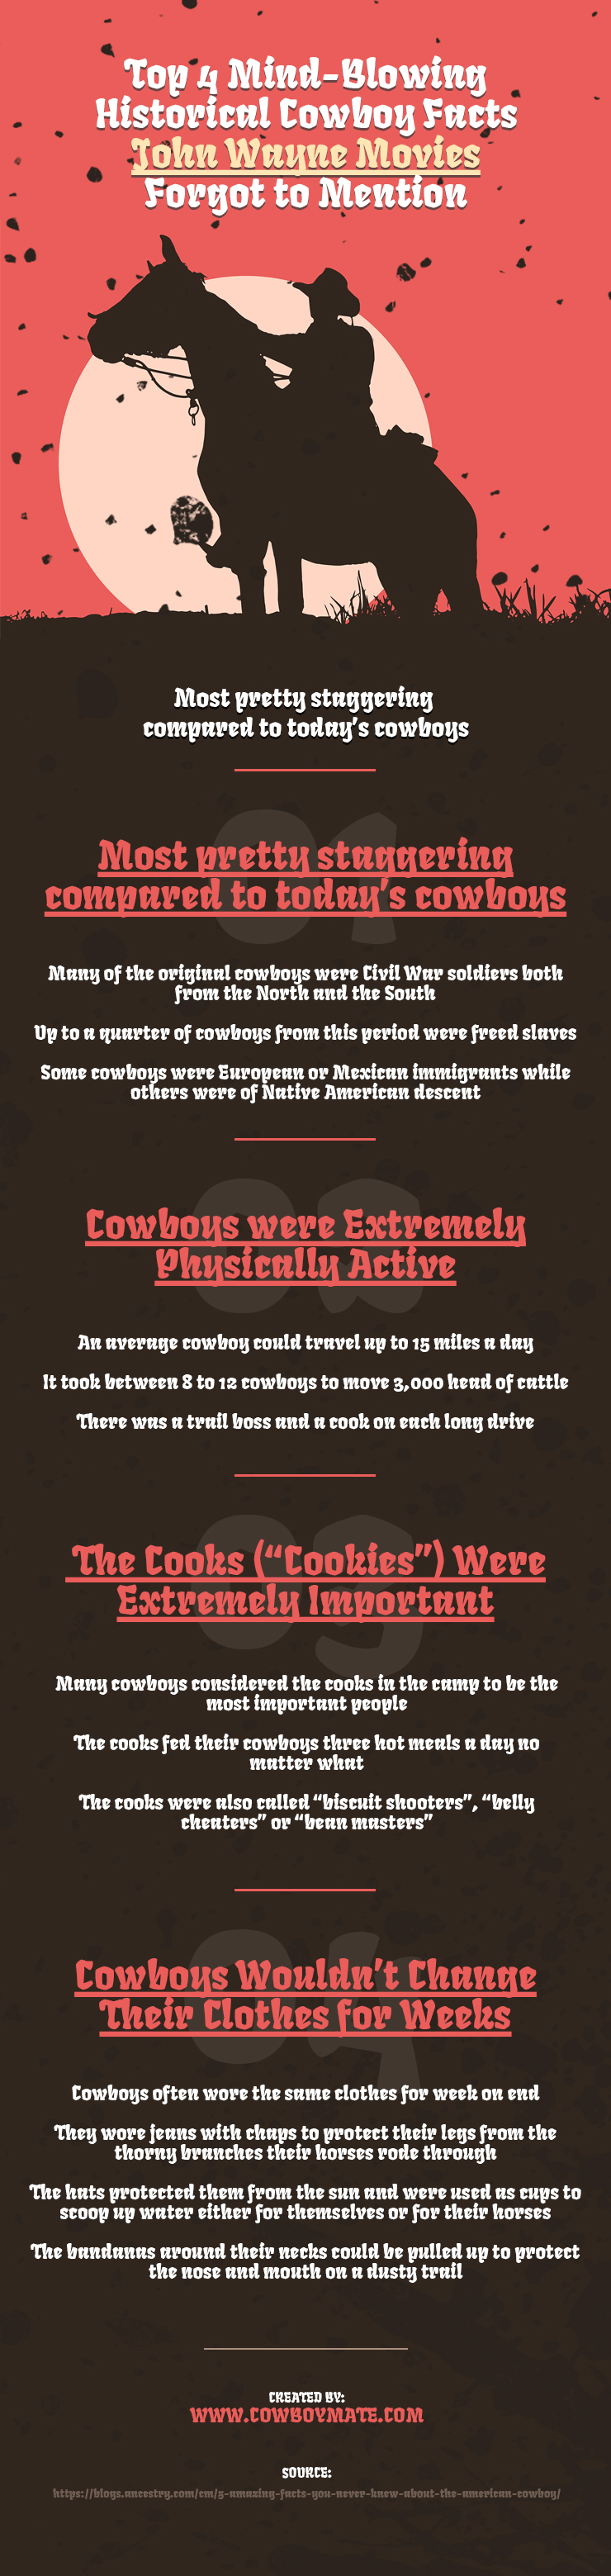 Top 4 Mind Blowing Historical Cowboy Facts John Wayne Movies Forgot to Mention